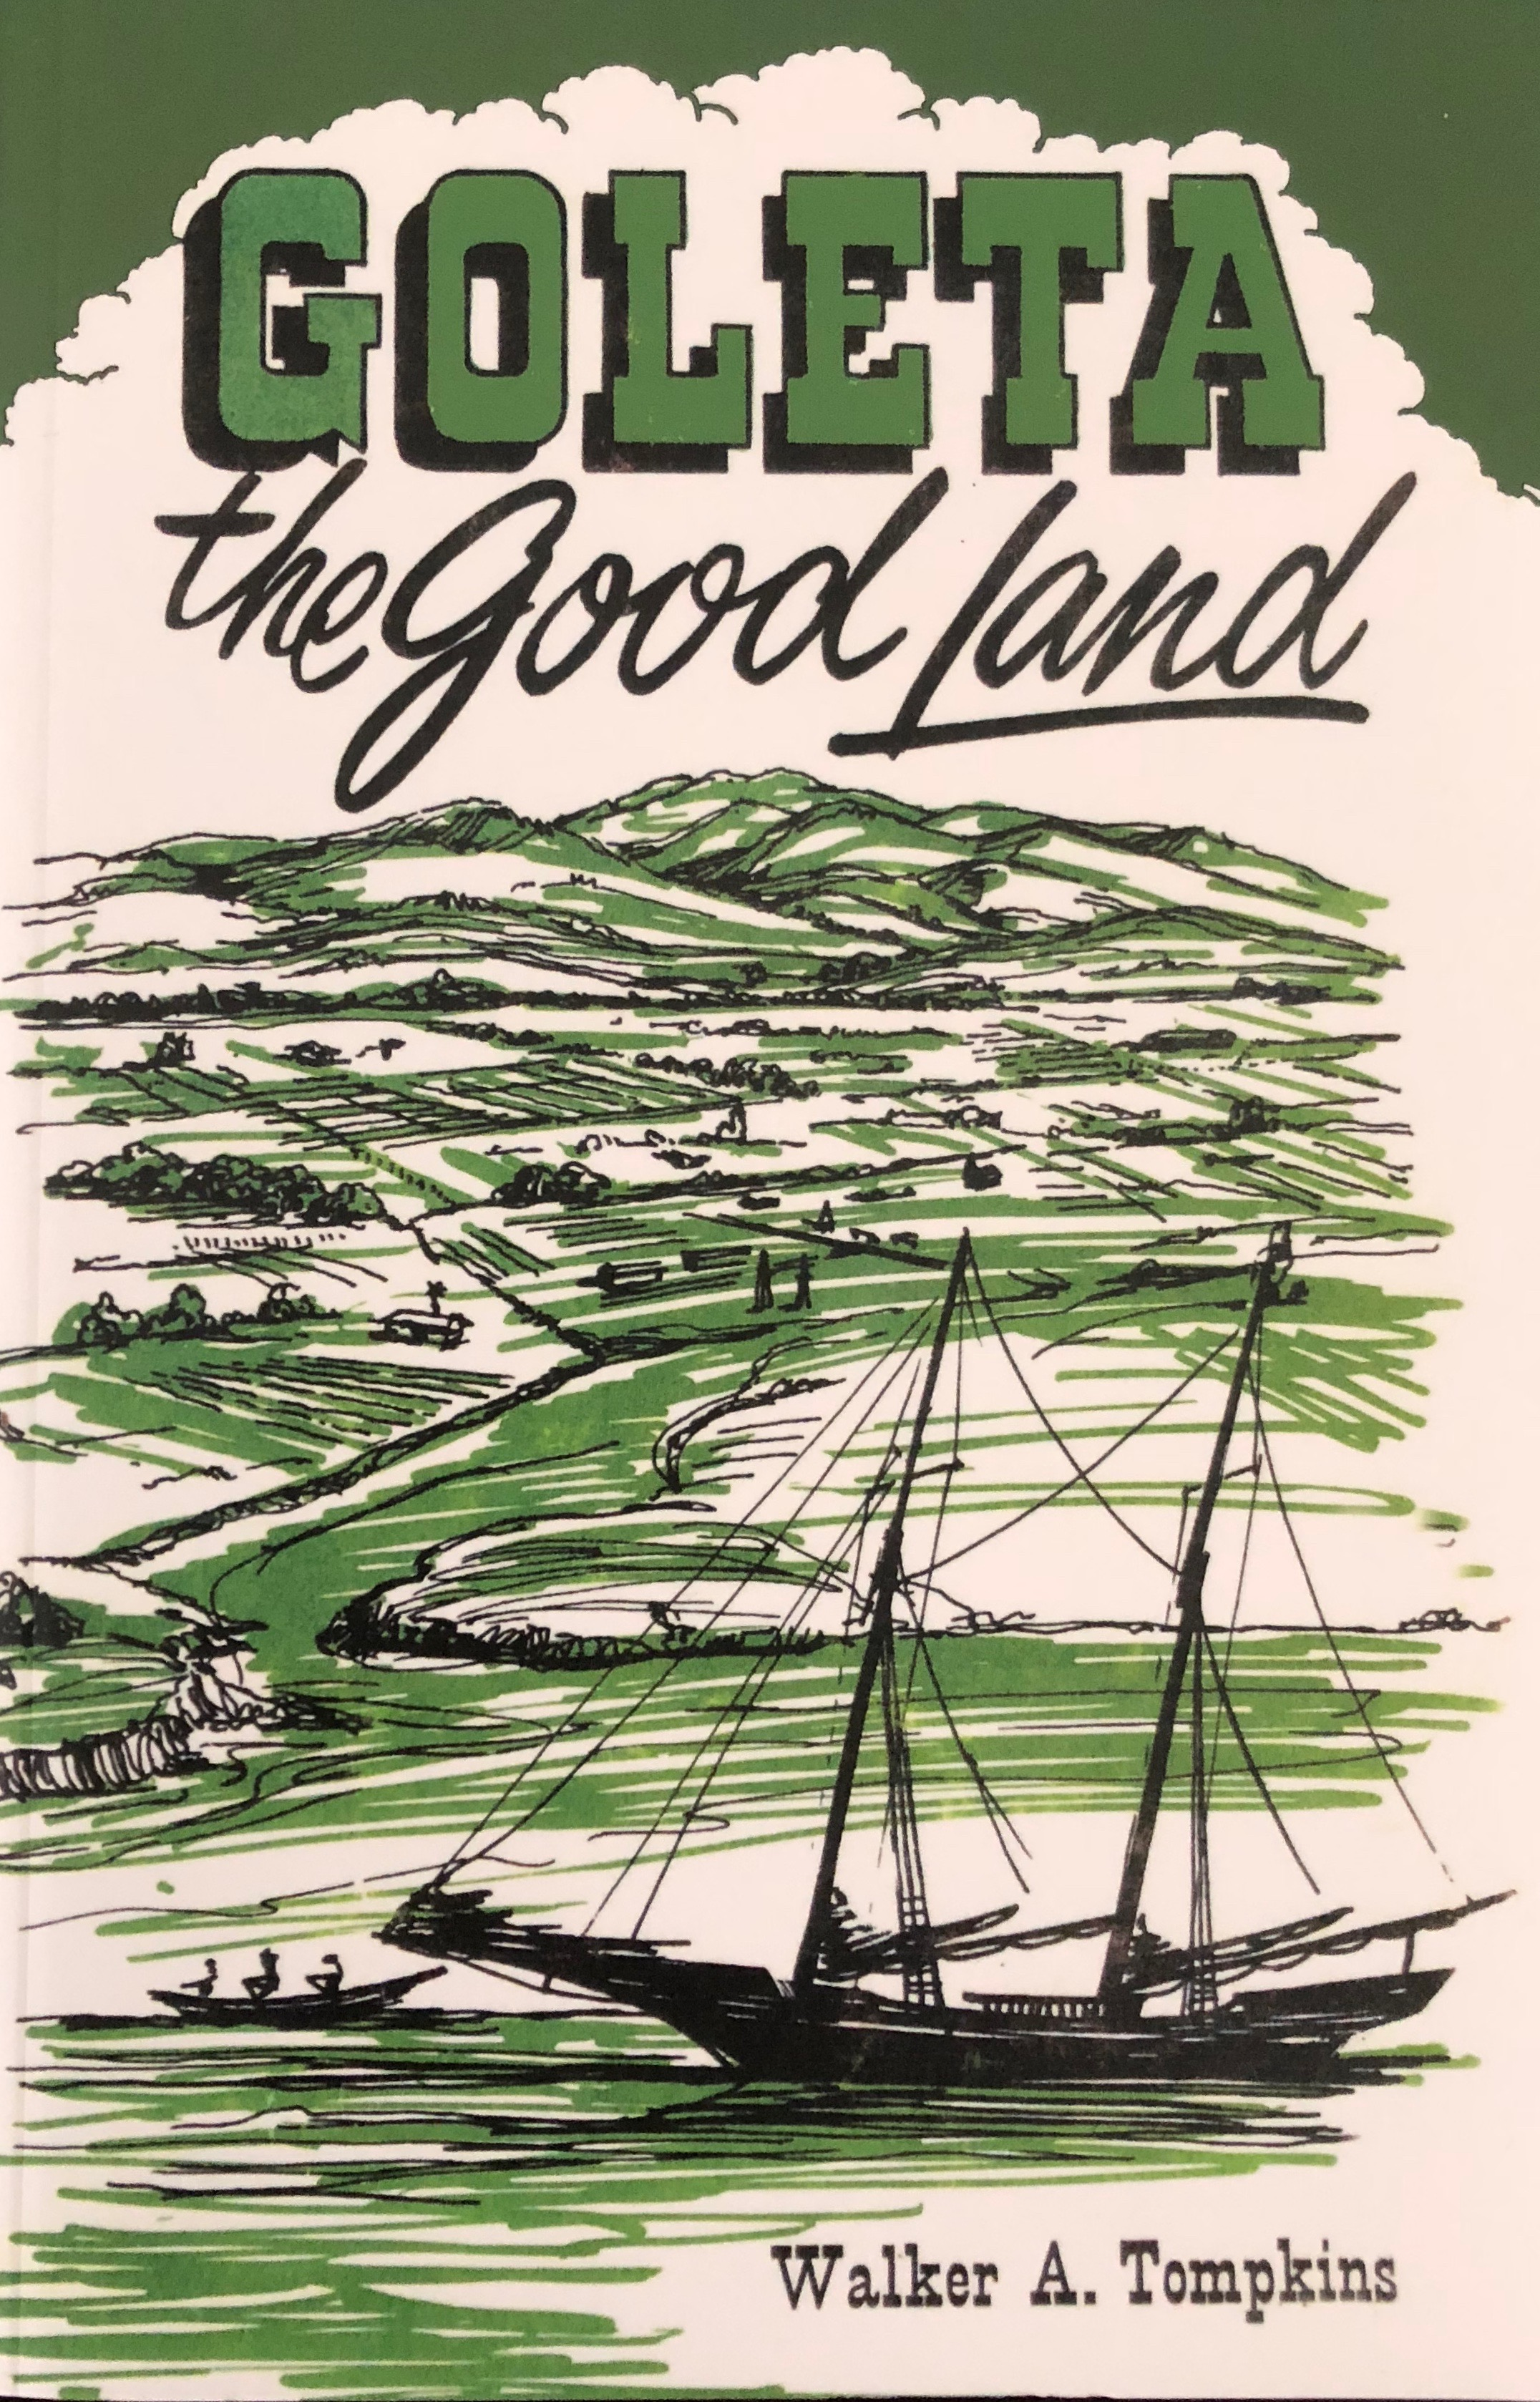 Goleta The Good Land, by Walker A Tompkins (Soft Cover)